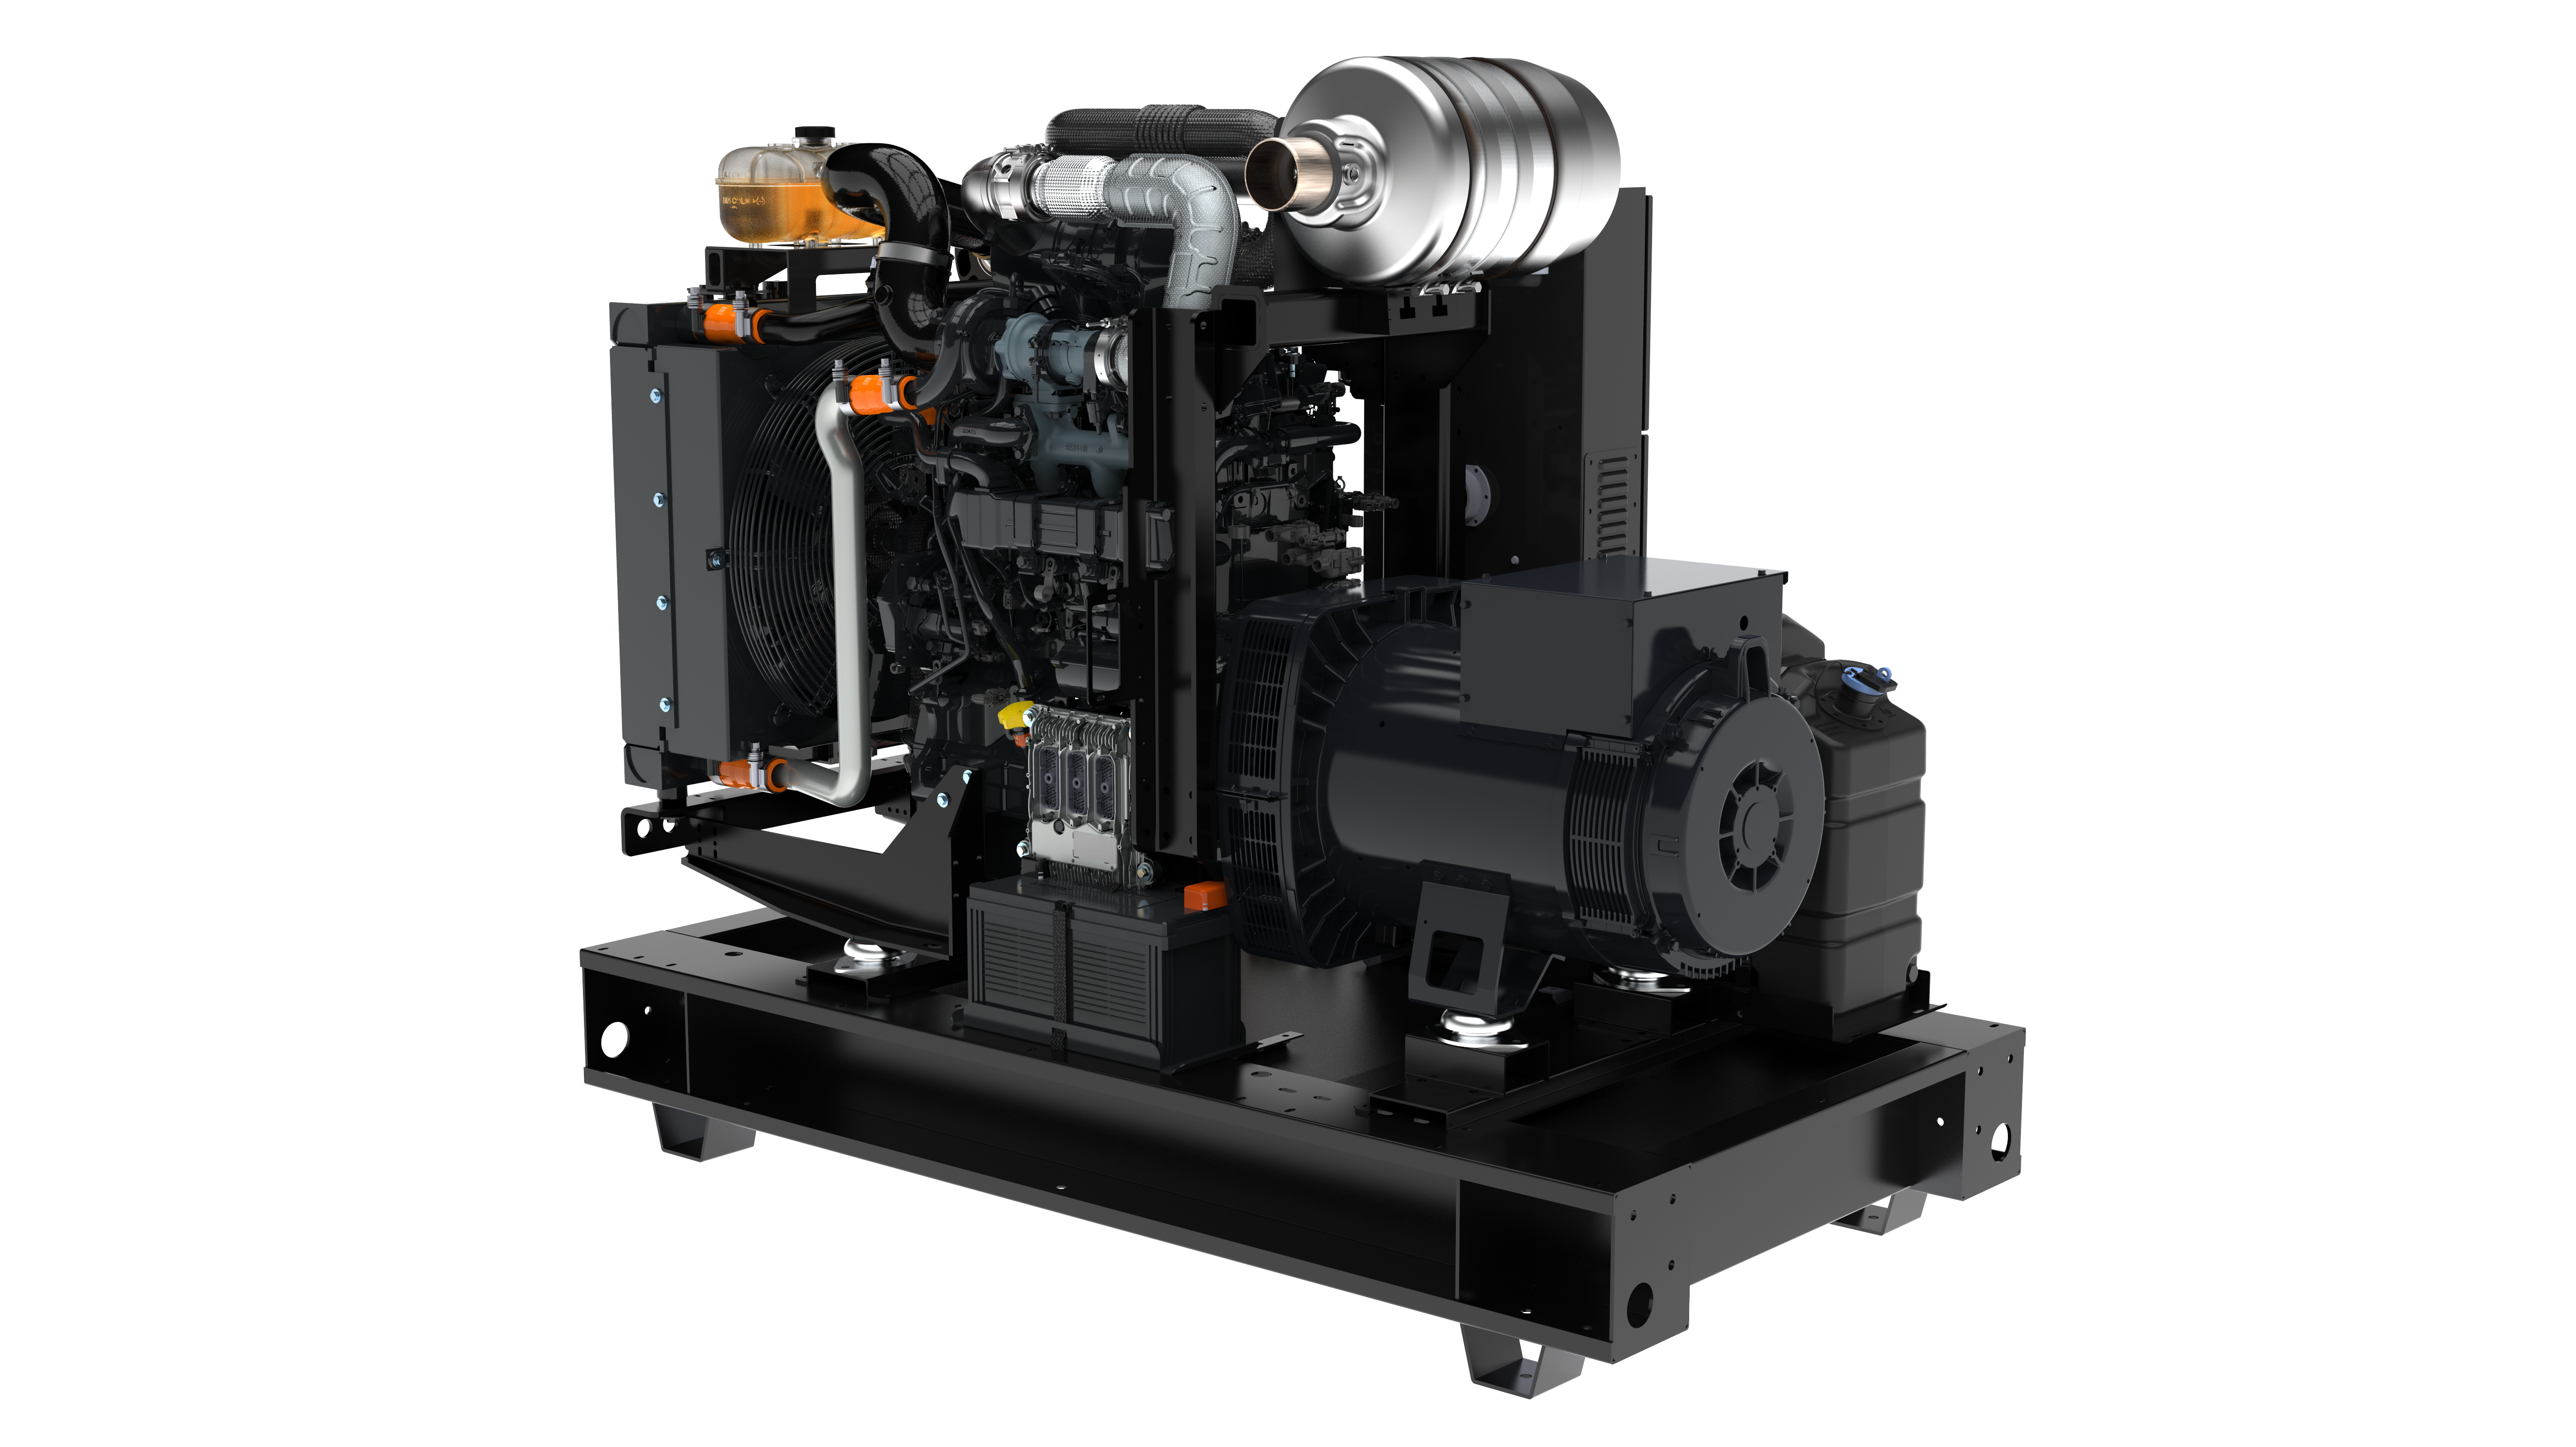 This open skid generator meets EPA Tier 4 emissions standards.